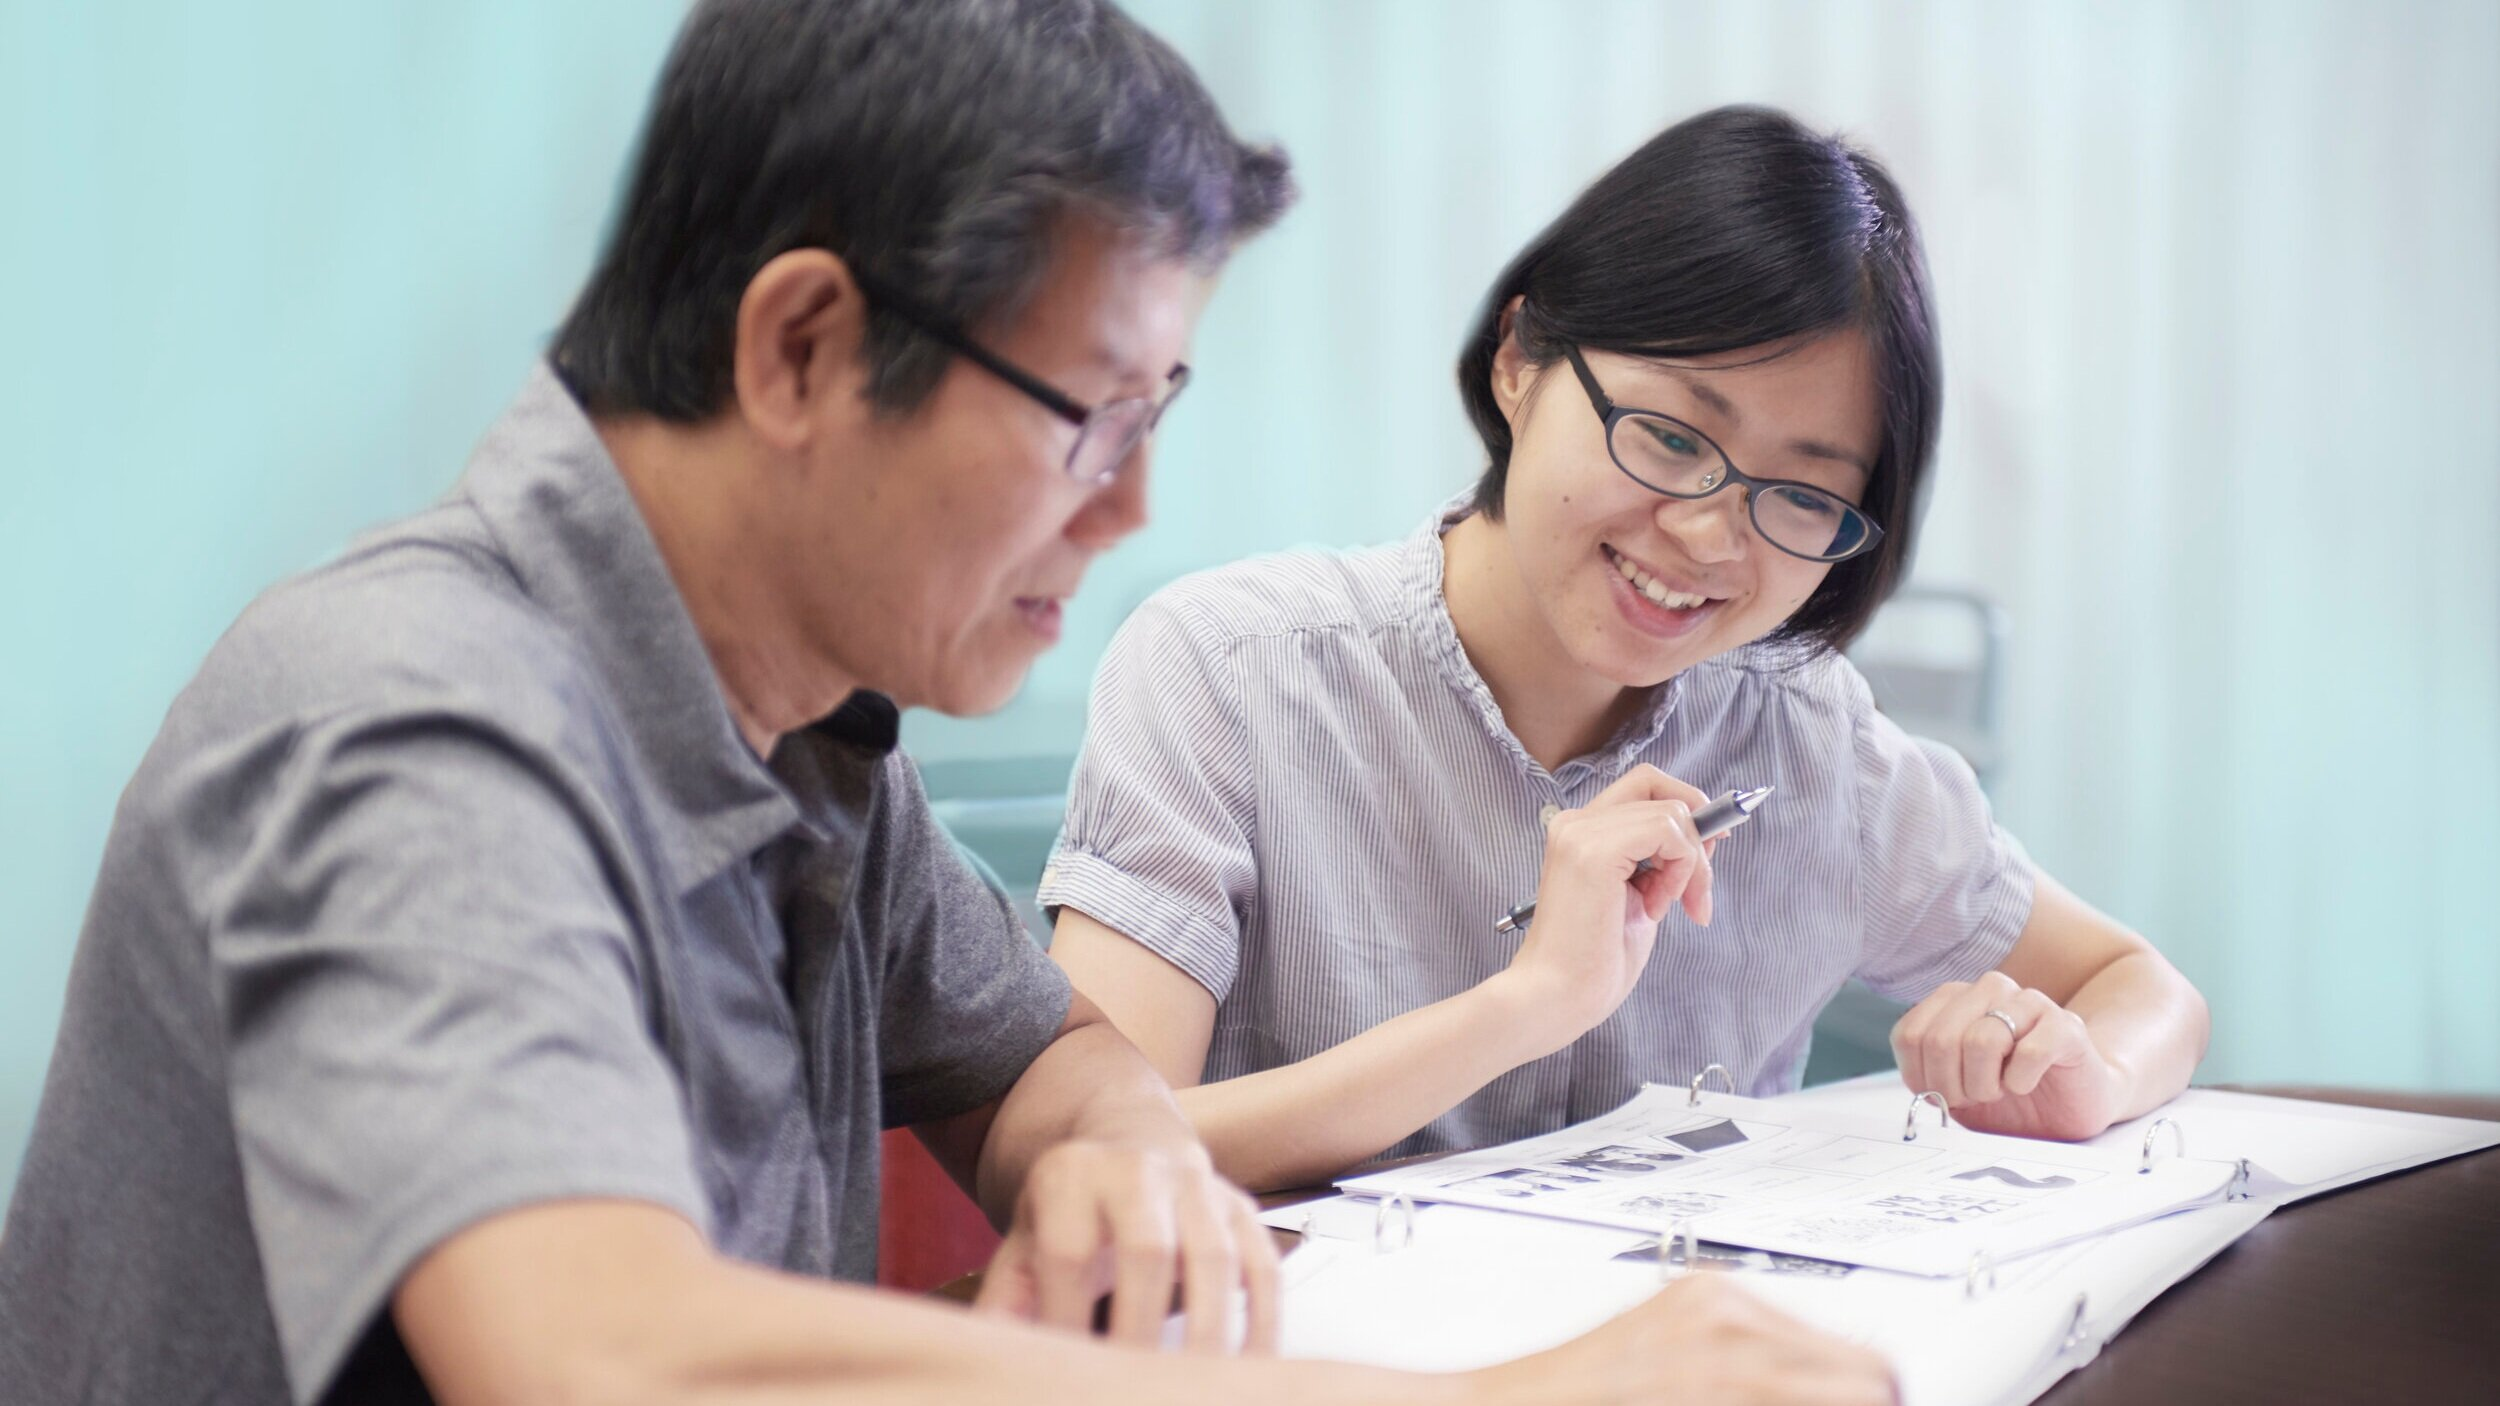 ESL - At the International Learning Center, students can take classes to improve their English skills, including English as a Second Language (ESL), Citizenship Prep, Reading Comprehension and Conversation Class. ESL Bible Studies are also available.LEARN MORE